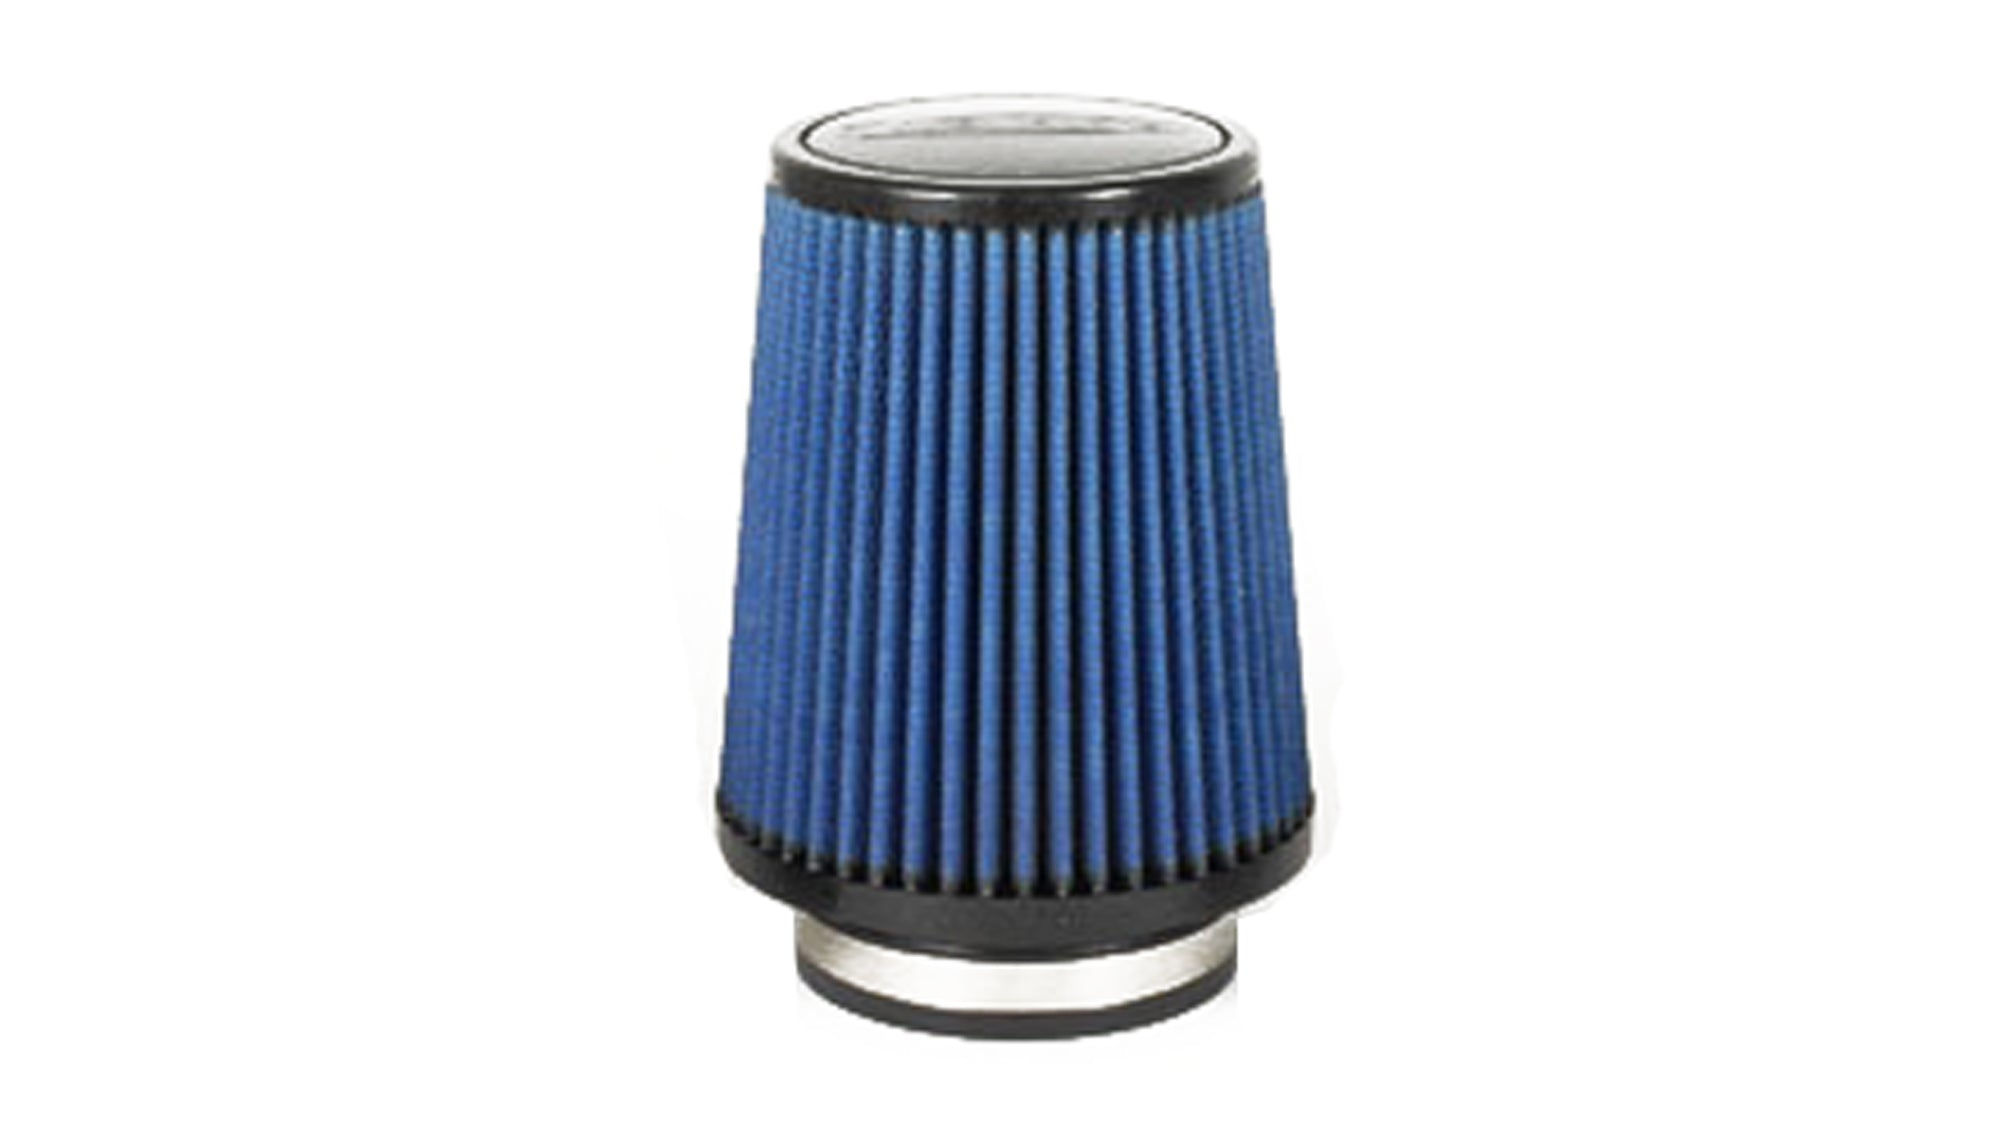 1999-2004 Ford F-250 and F-350 Oiled Filter - 5111